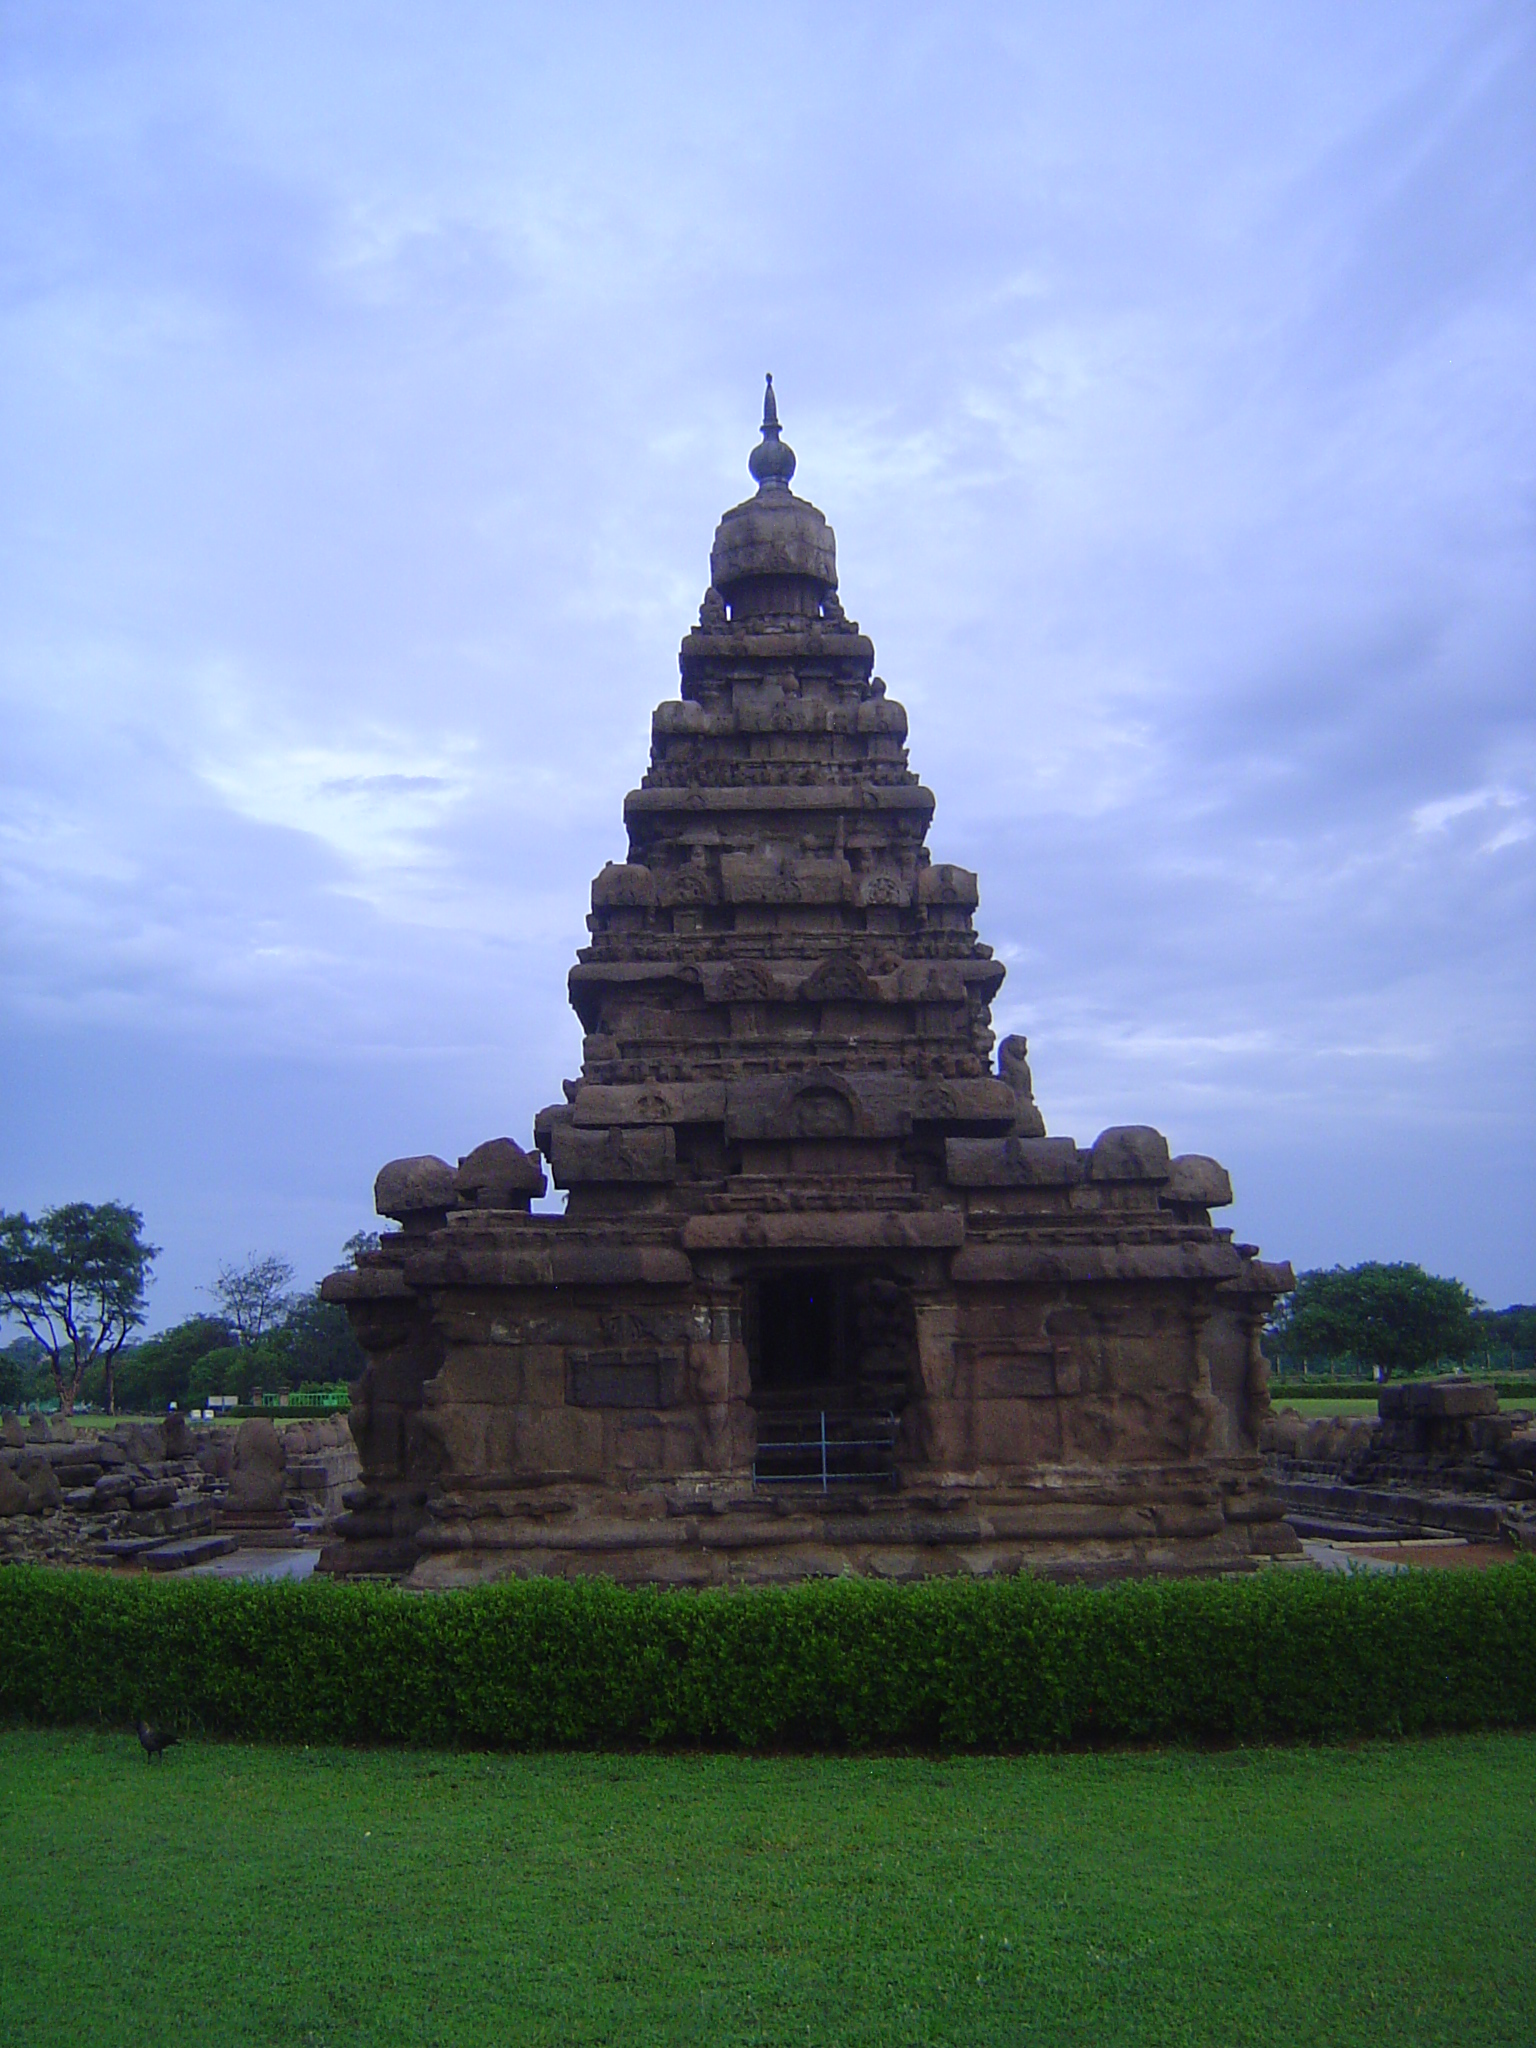 Peninsular India: Mamallapuram 3: Shore Temple